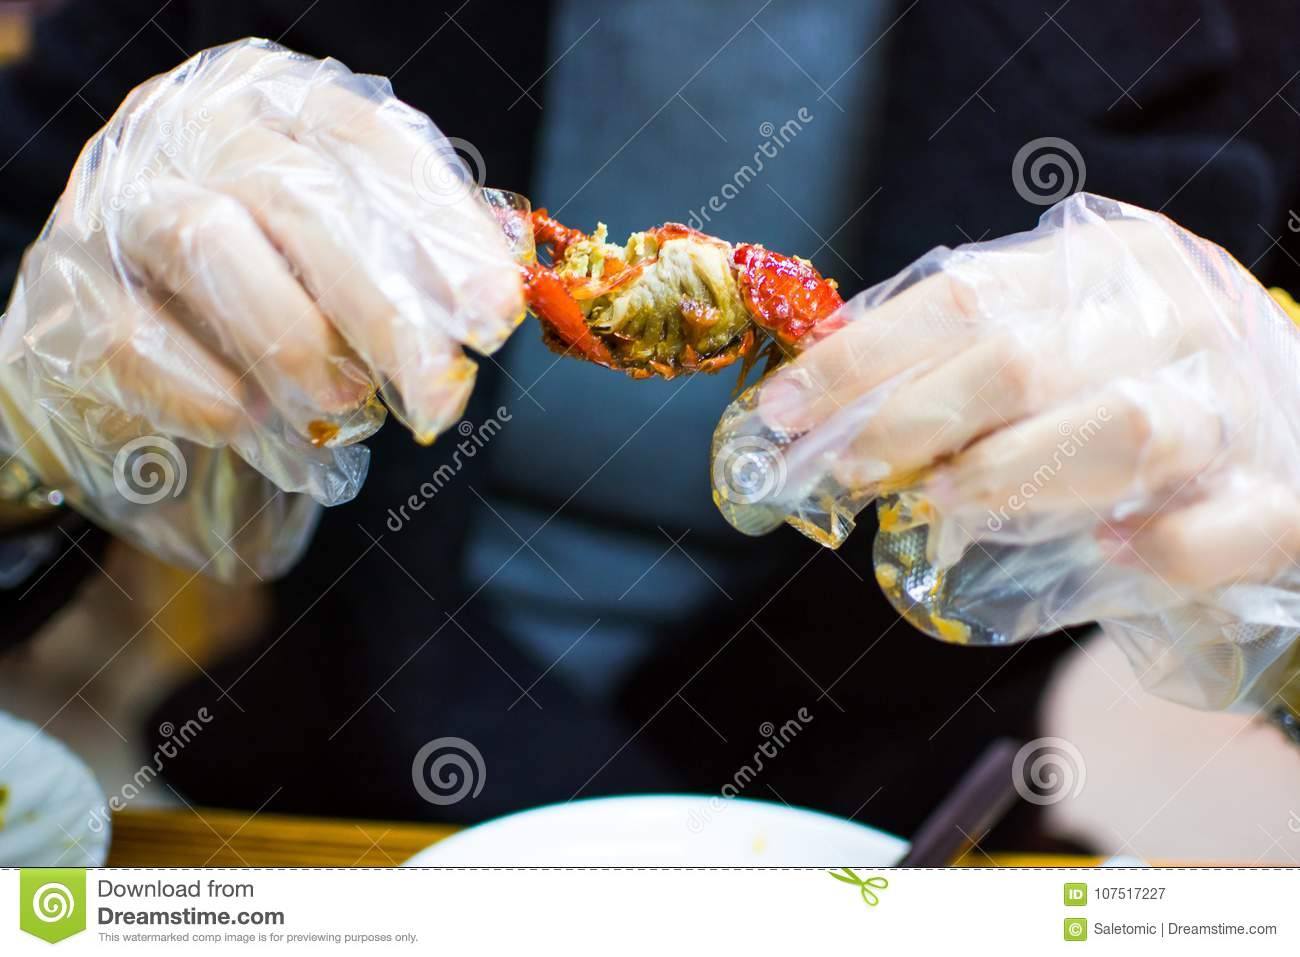 Woman eating a crayfish with plastic gloves